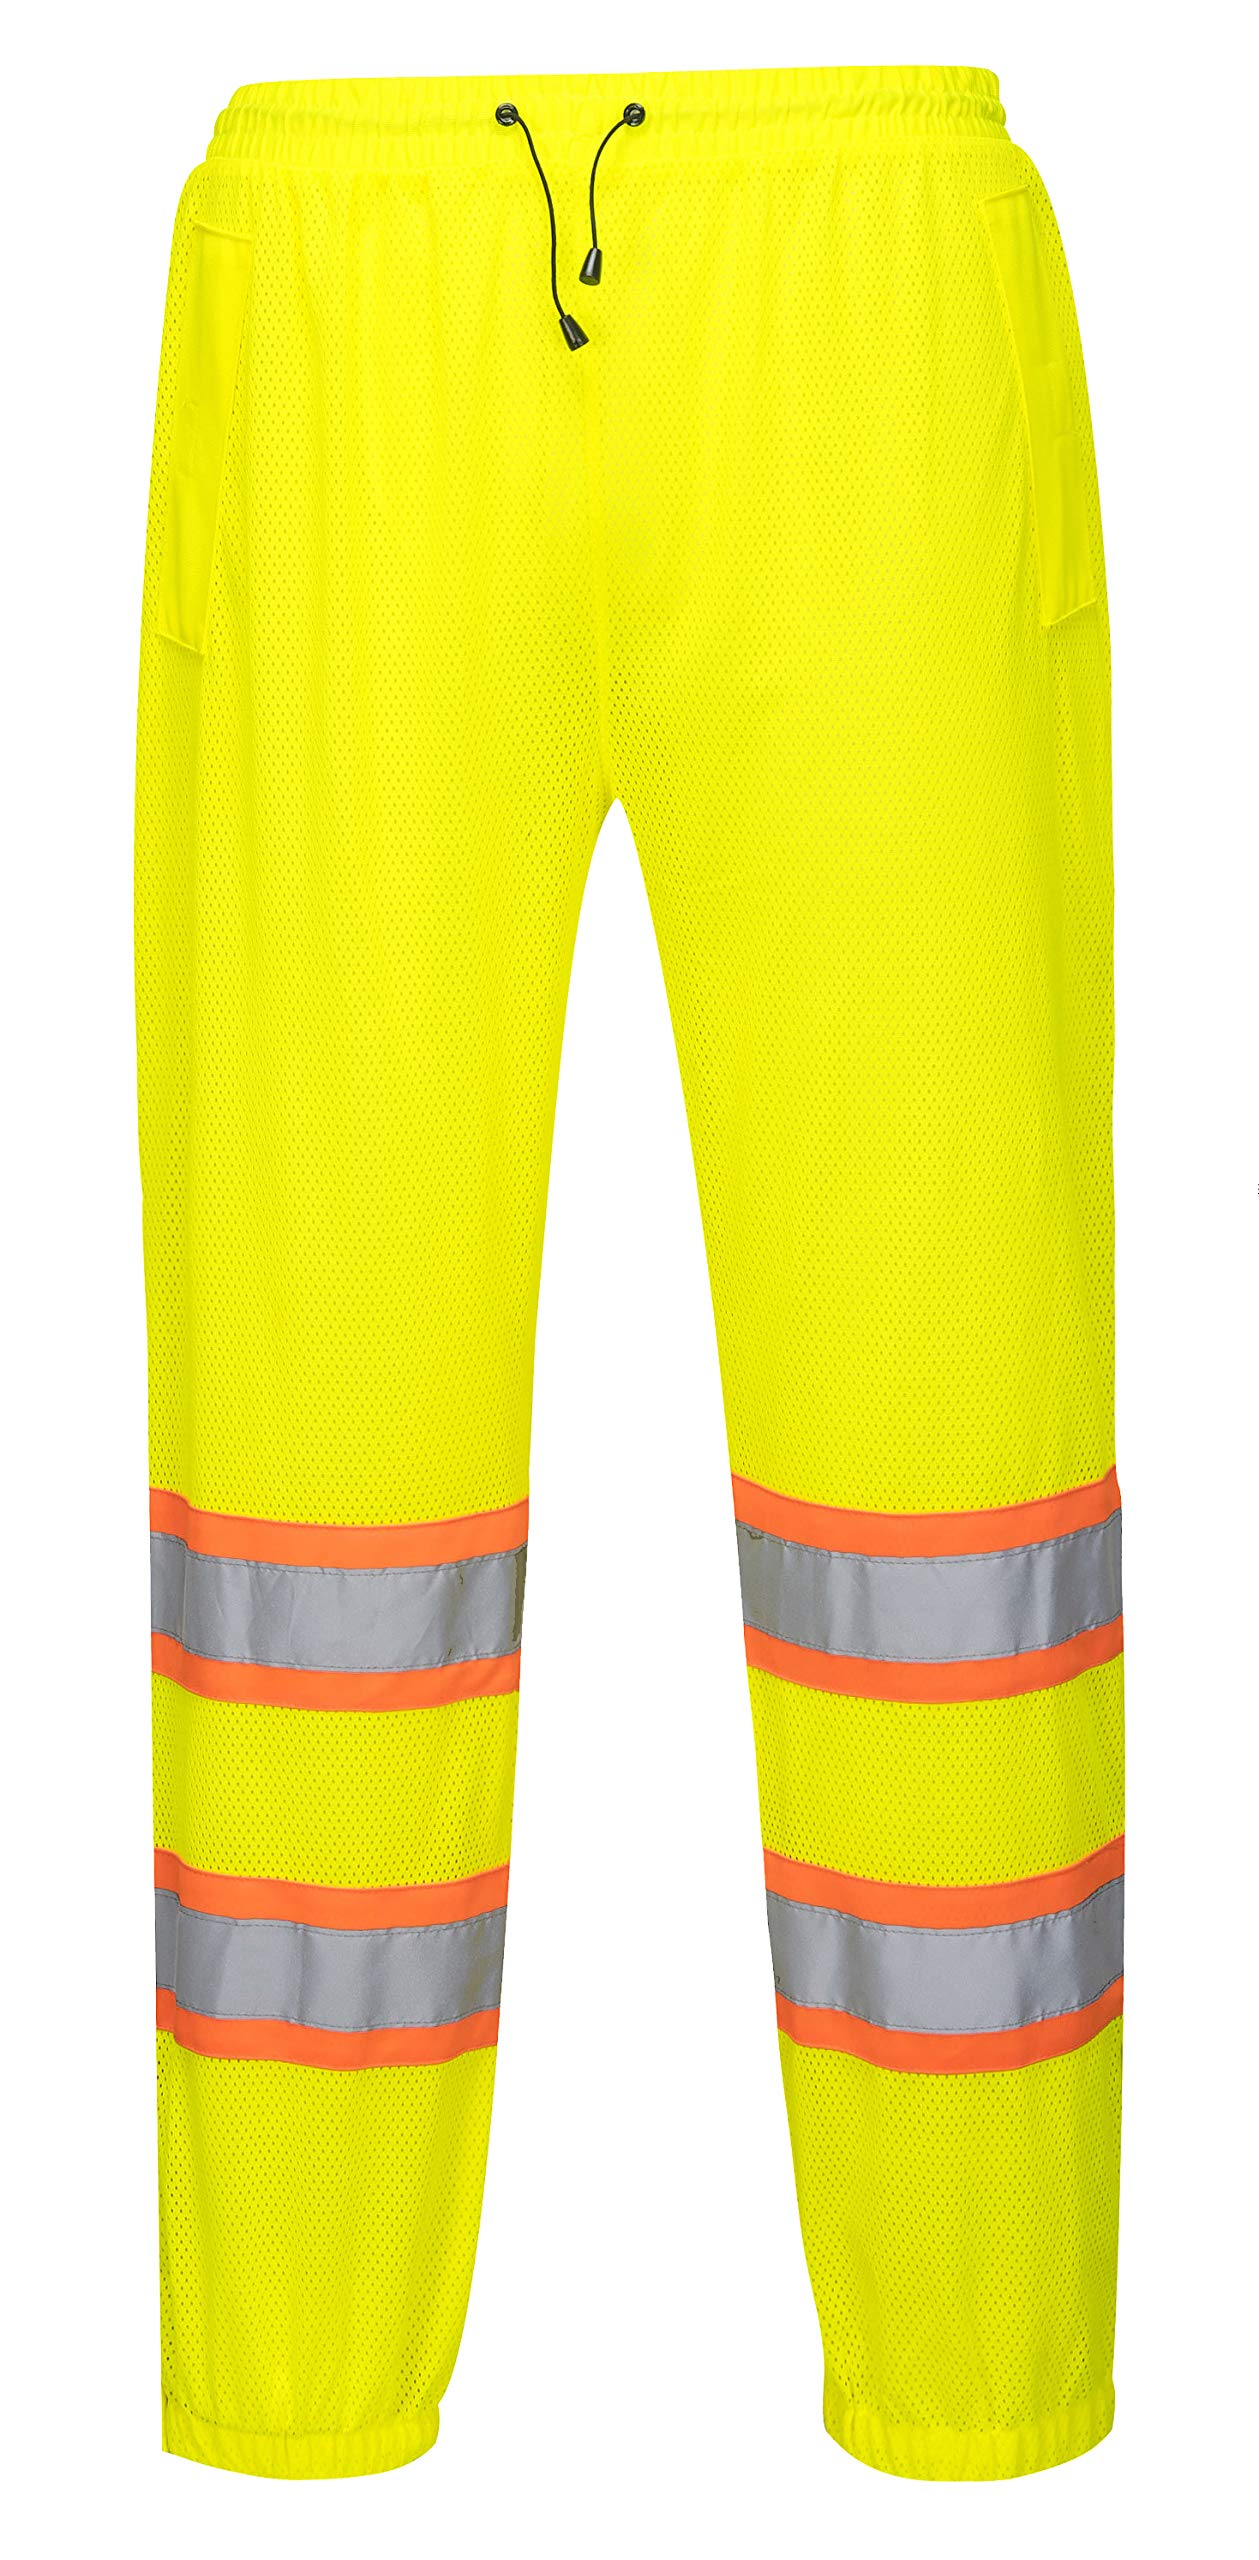 Mesh Overpants for Men and Women - General Work Wear - Ansi Class E, High Visibility (Small/Medium, Yellow)